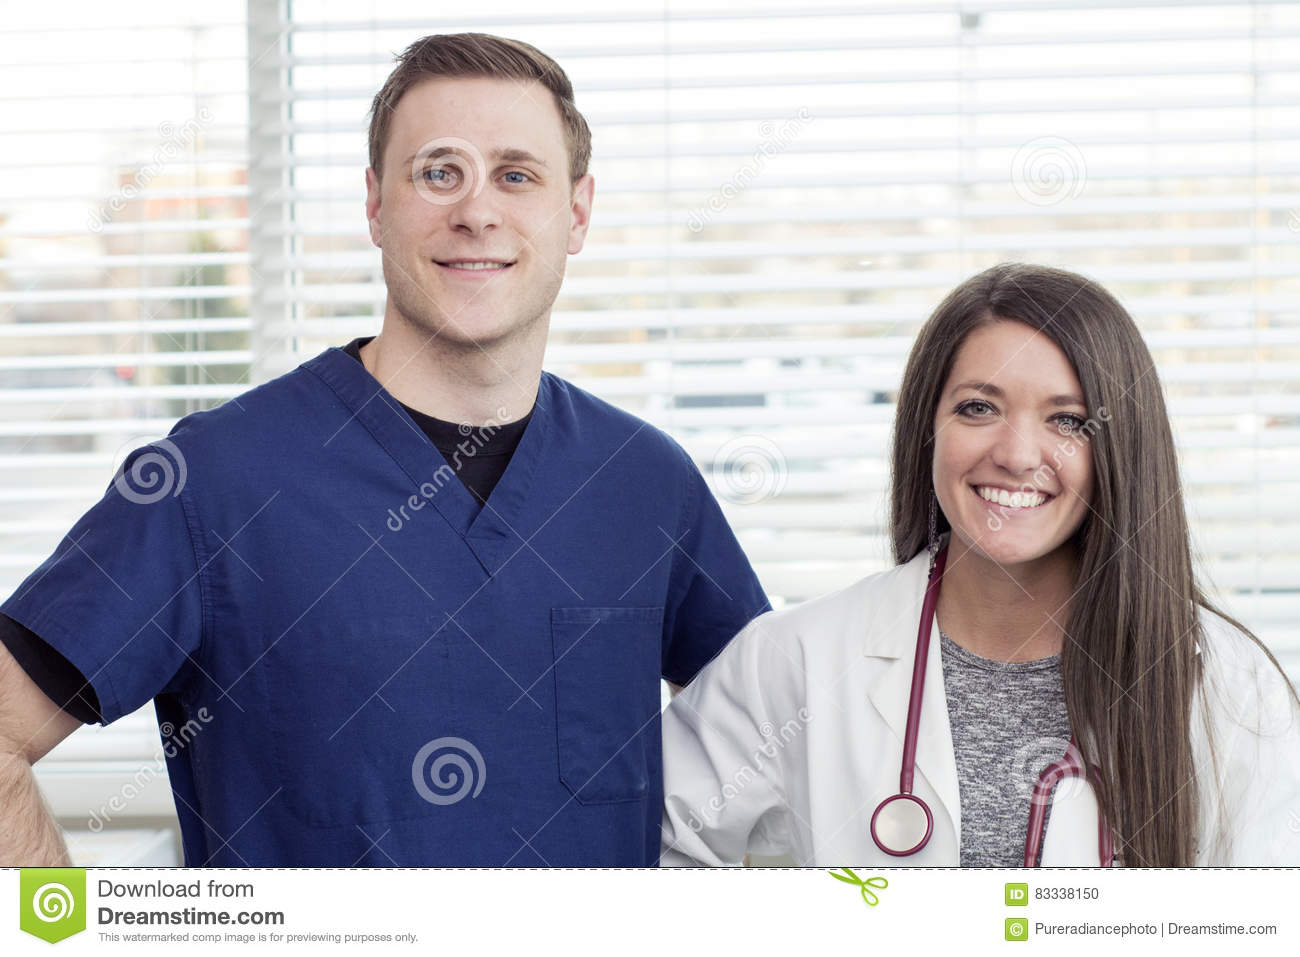 Female Doctor and male nurse smiling in office